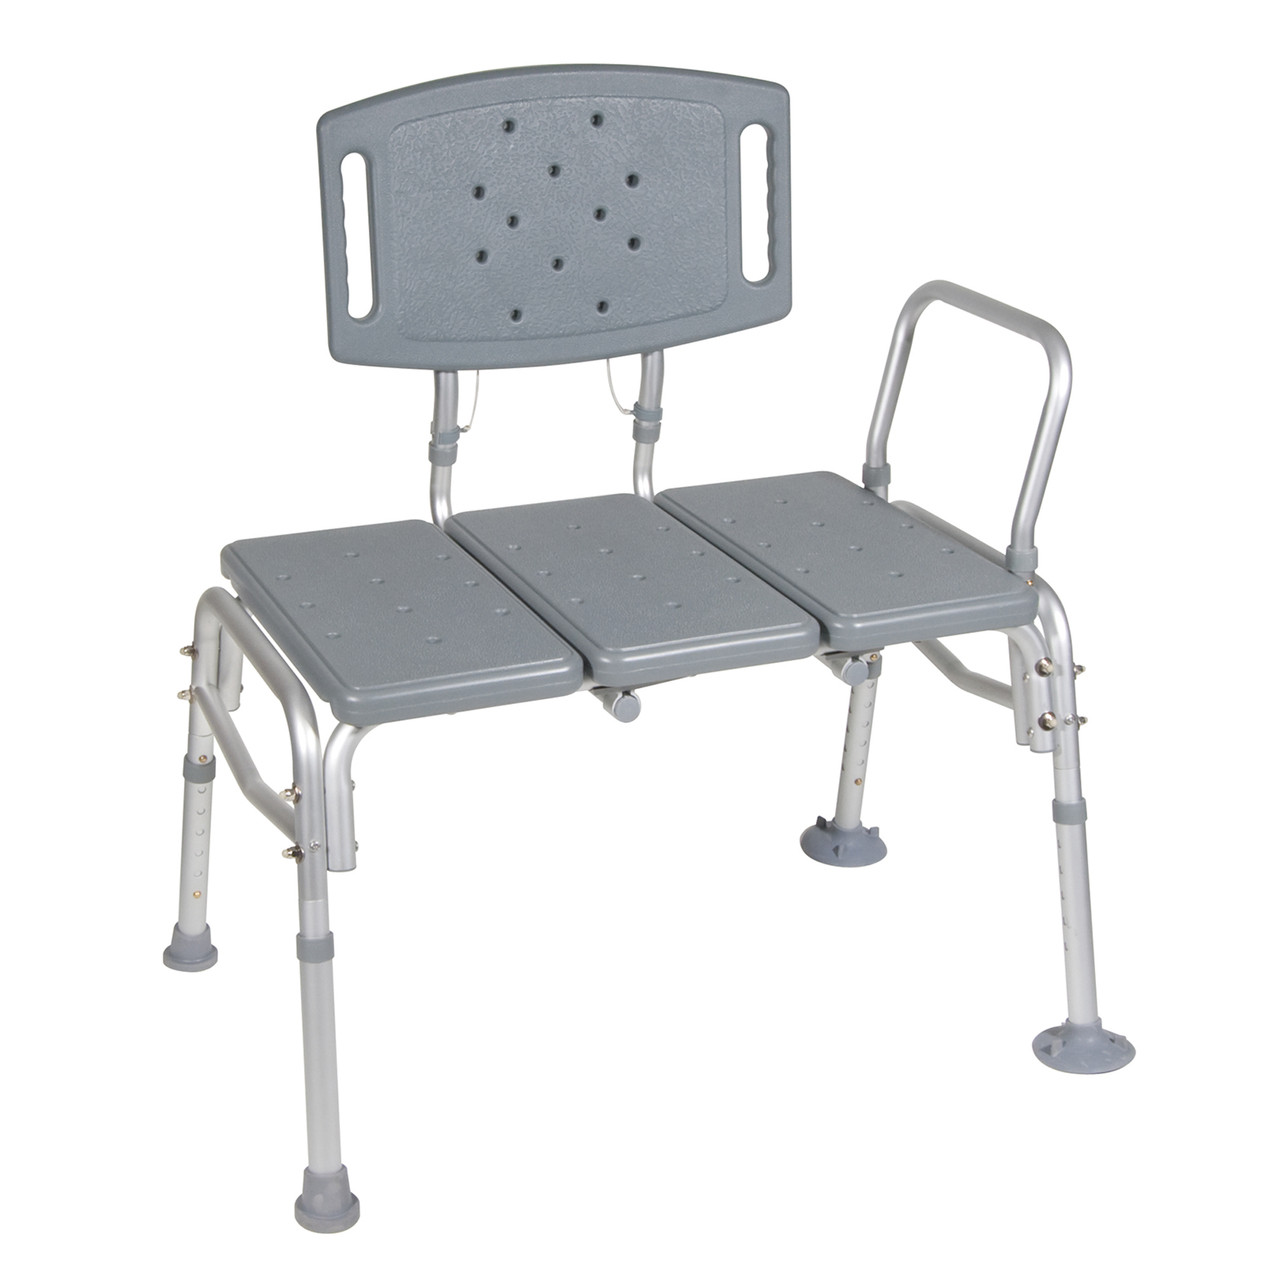 Drive Bariatric Transfer Bench 12025KD-1 - 500 lbs Capacity